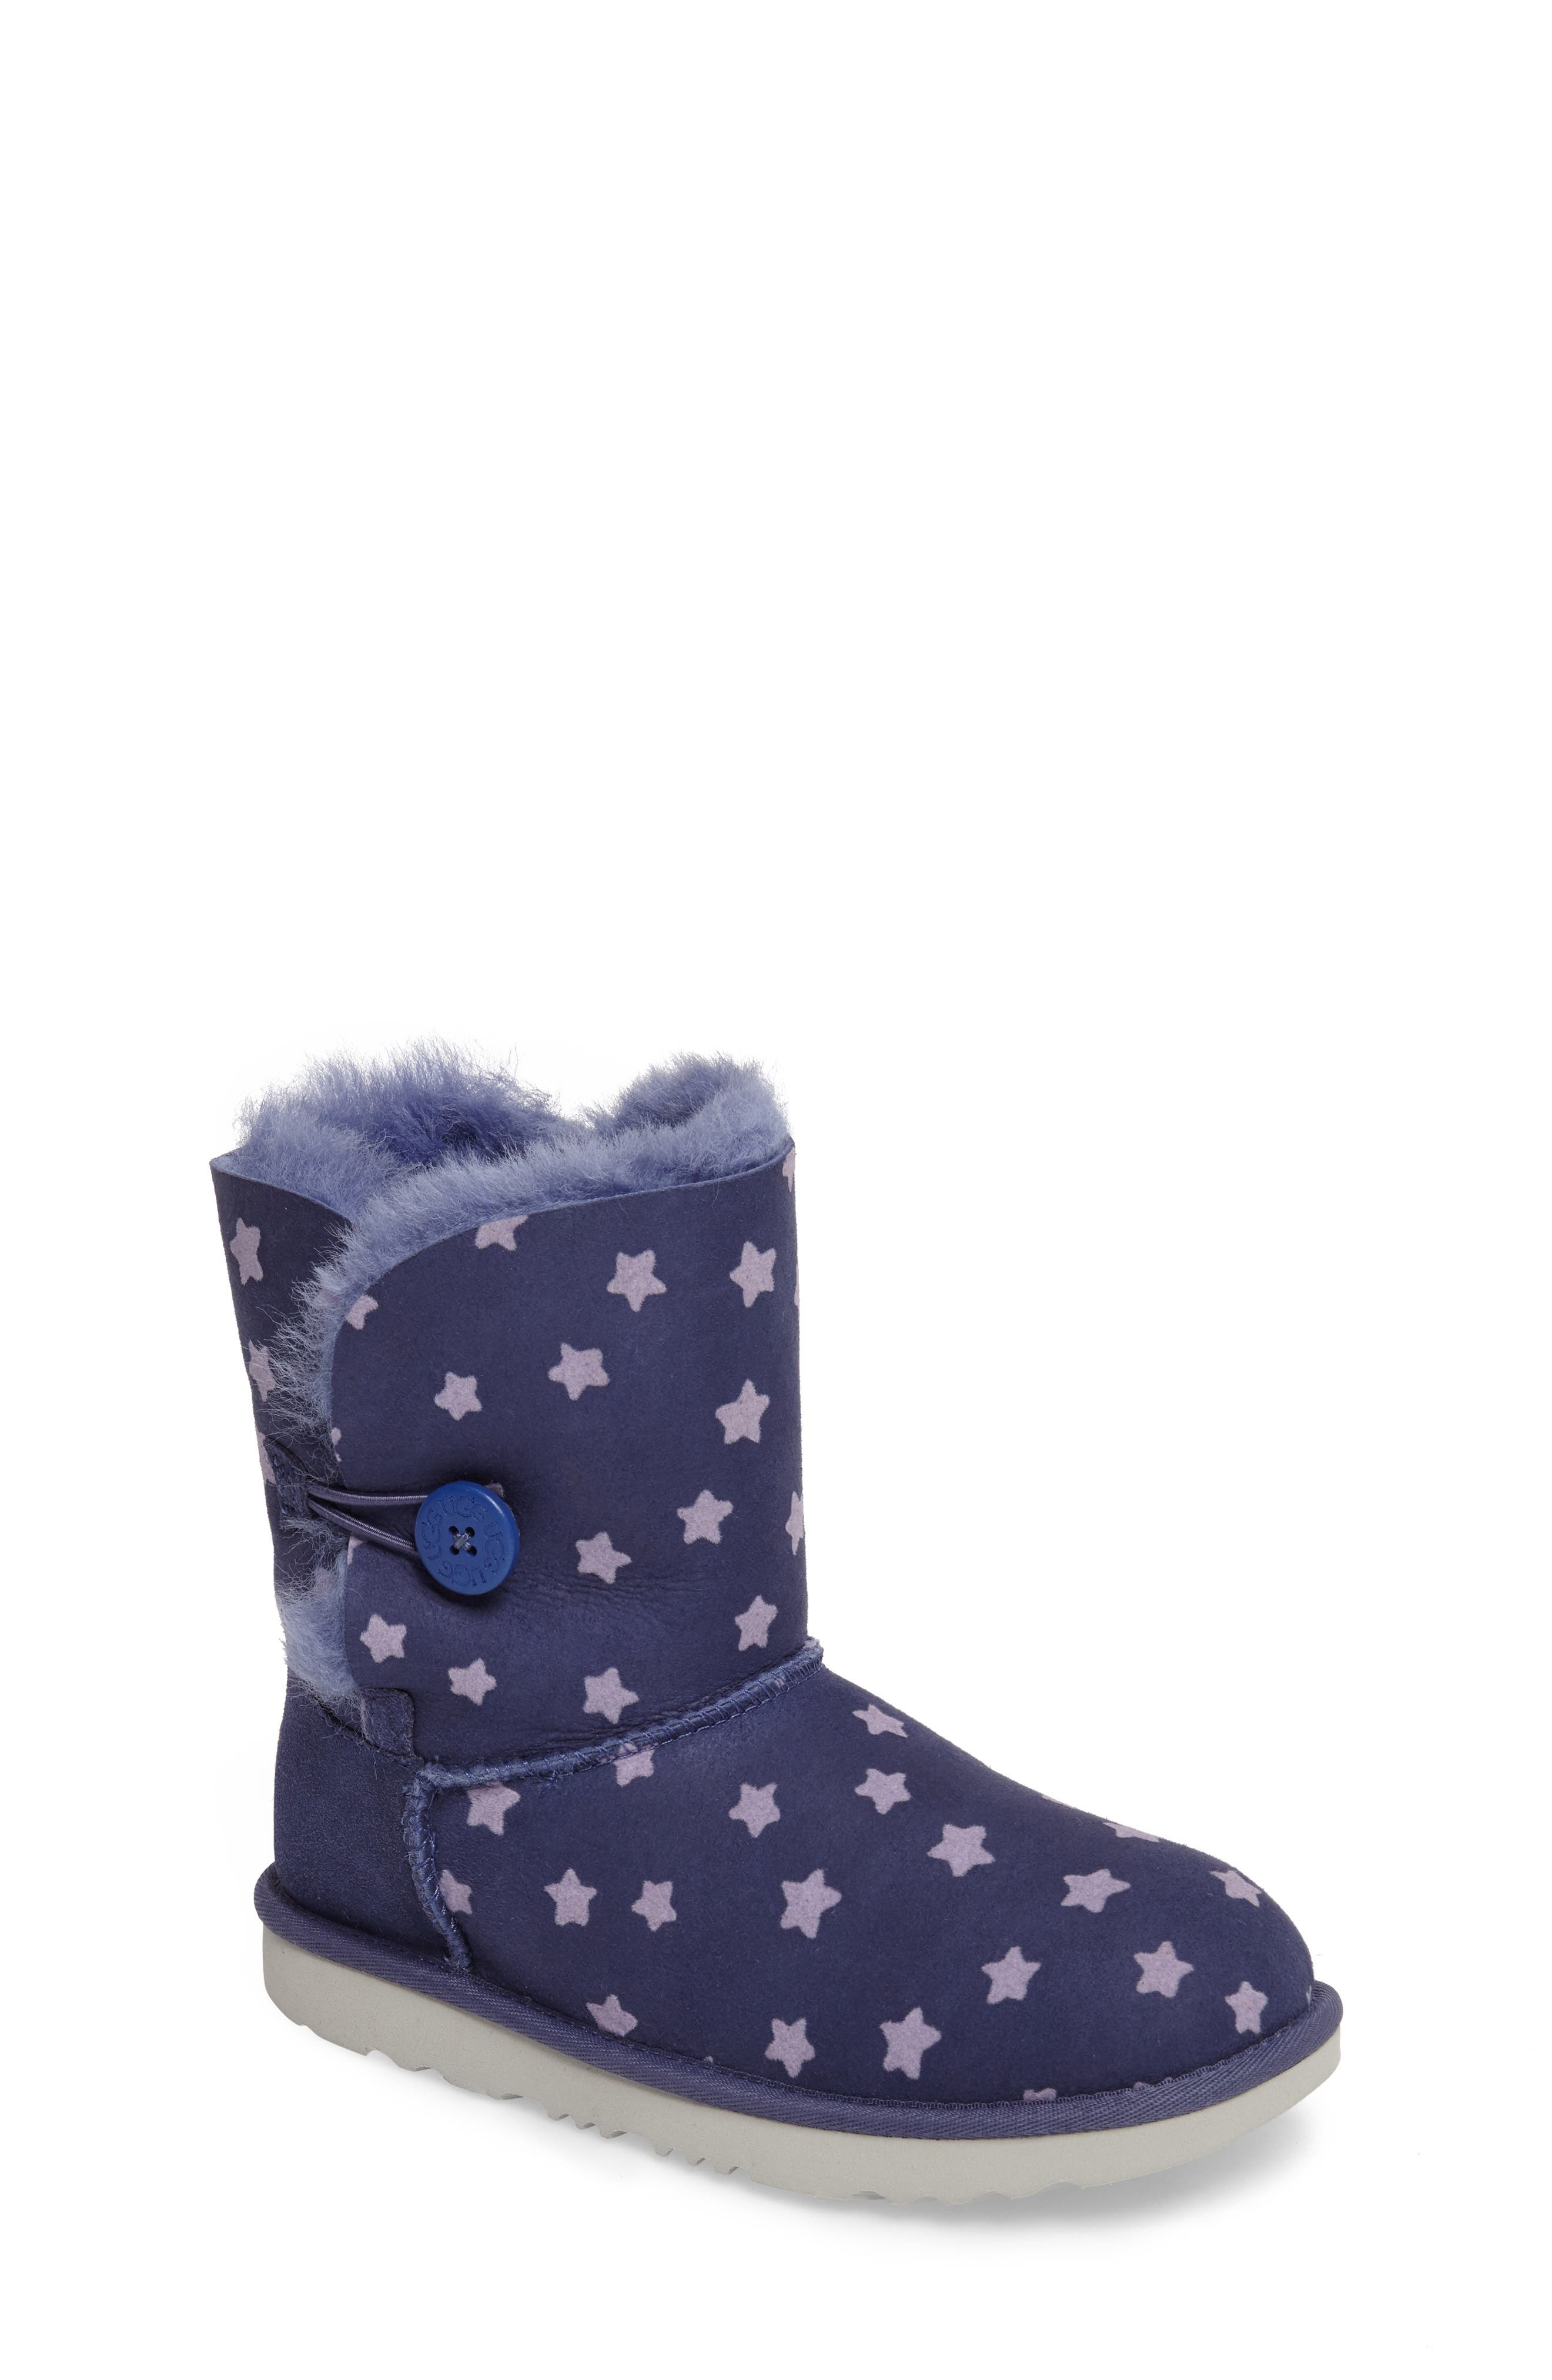 UGG® Bailey Button II Water-Resistant Genuine Shearling Stars Boot (Walker, Toddler, Little Kid & Big Kid)